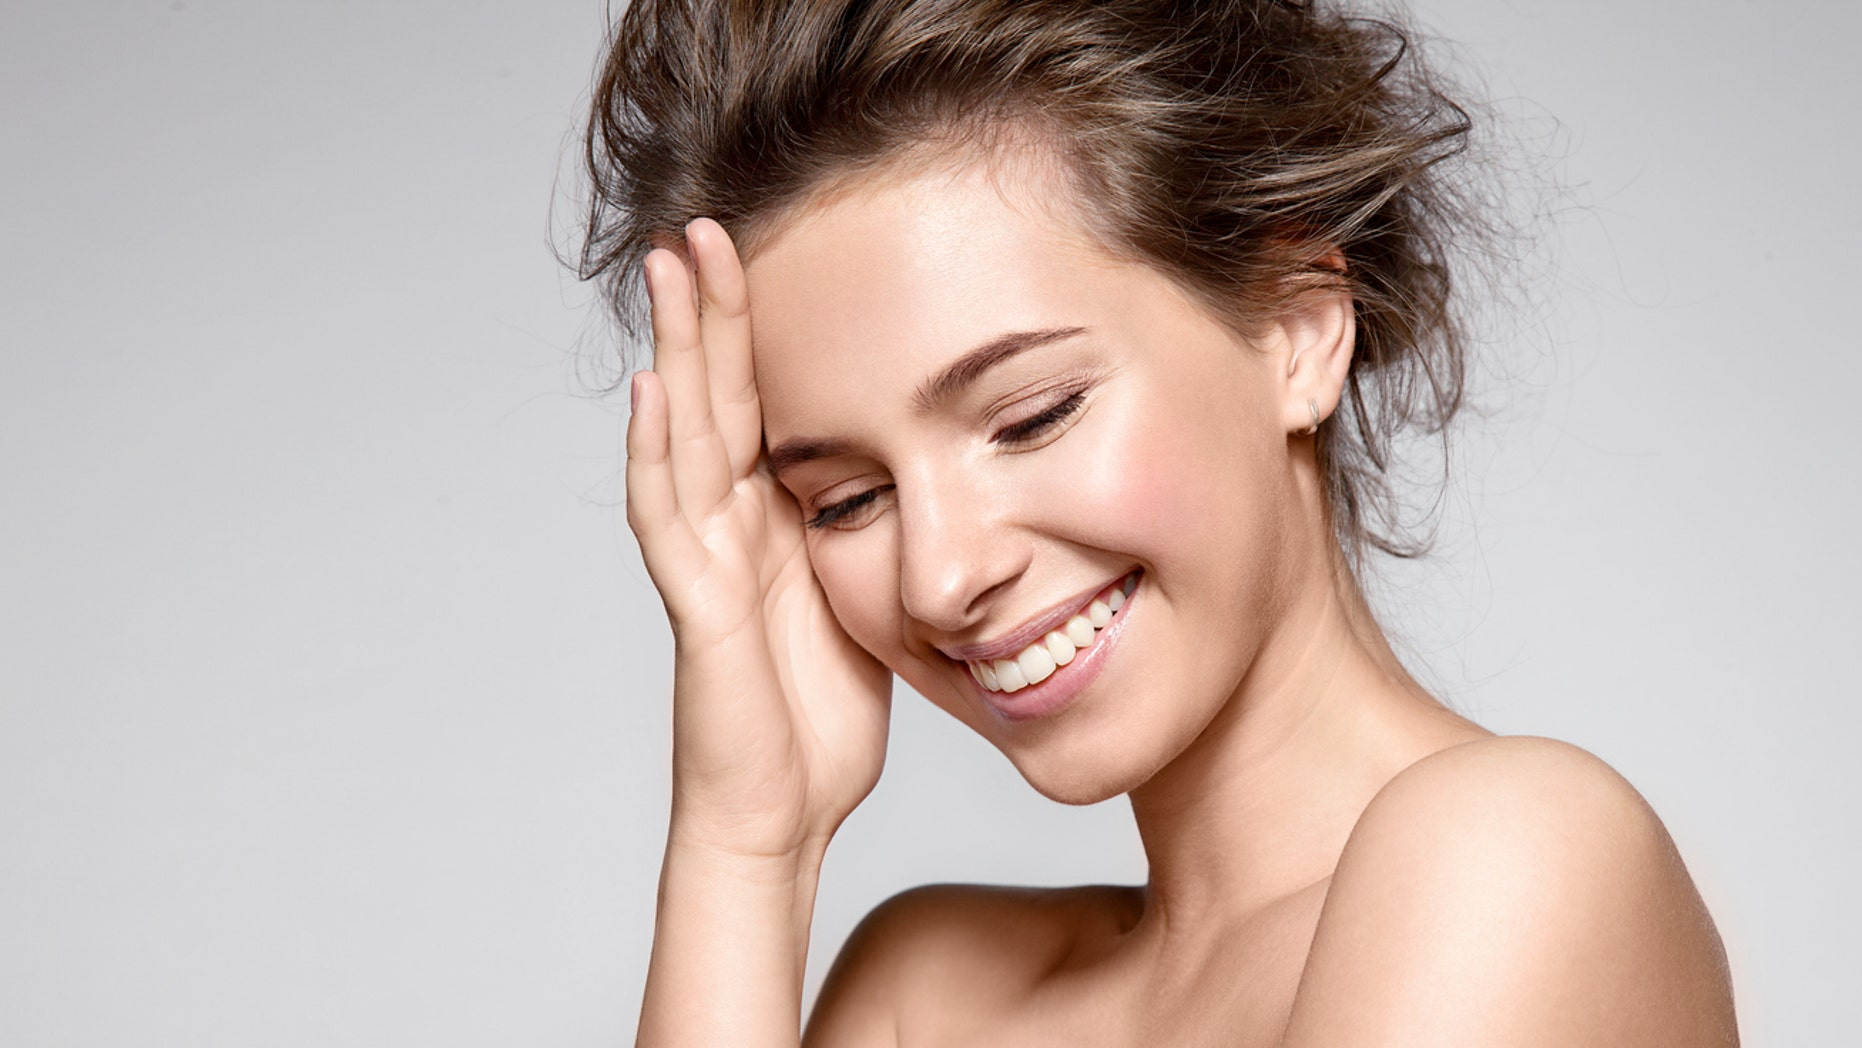 Beautiful smiling woman with natural make-up, clean skin and white teeth on  grey